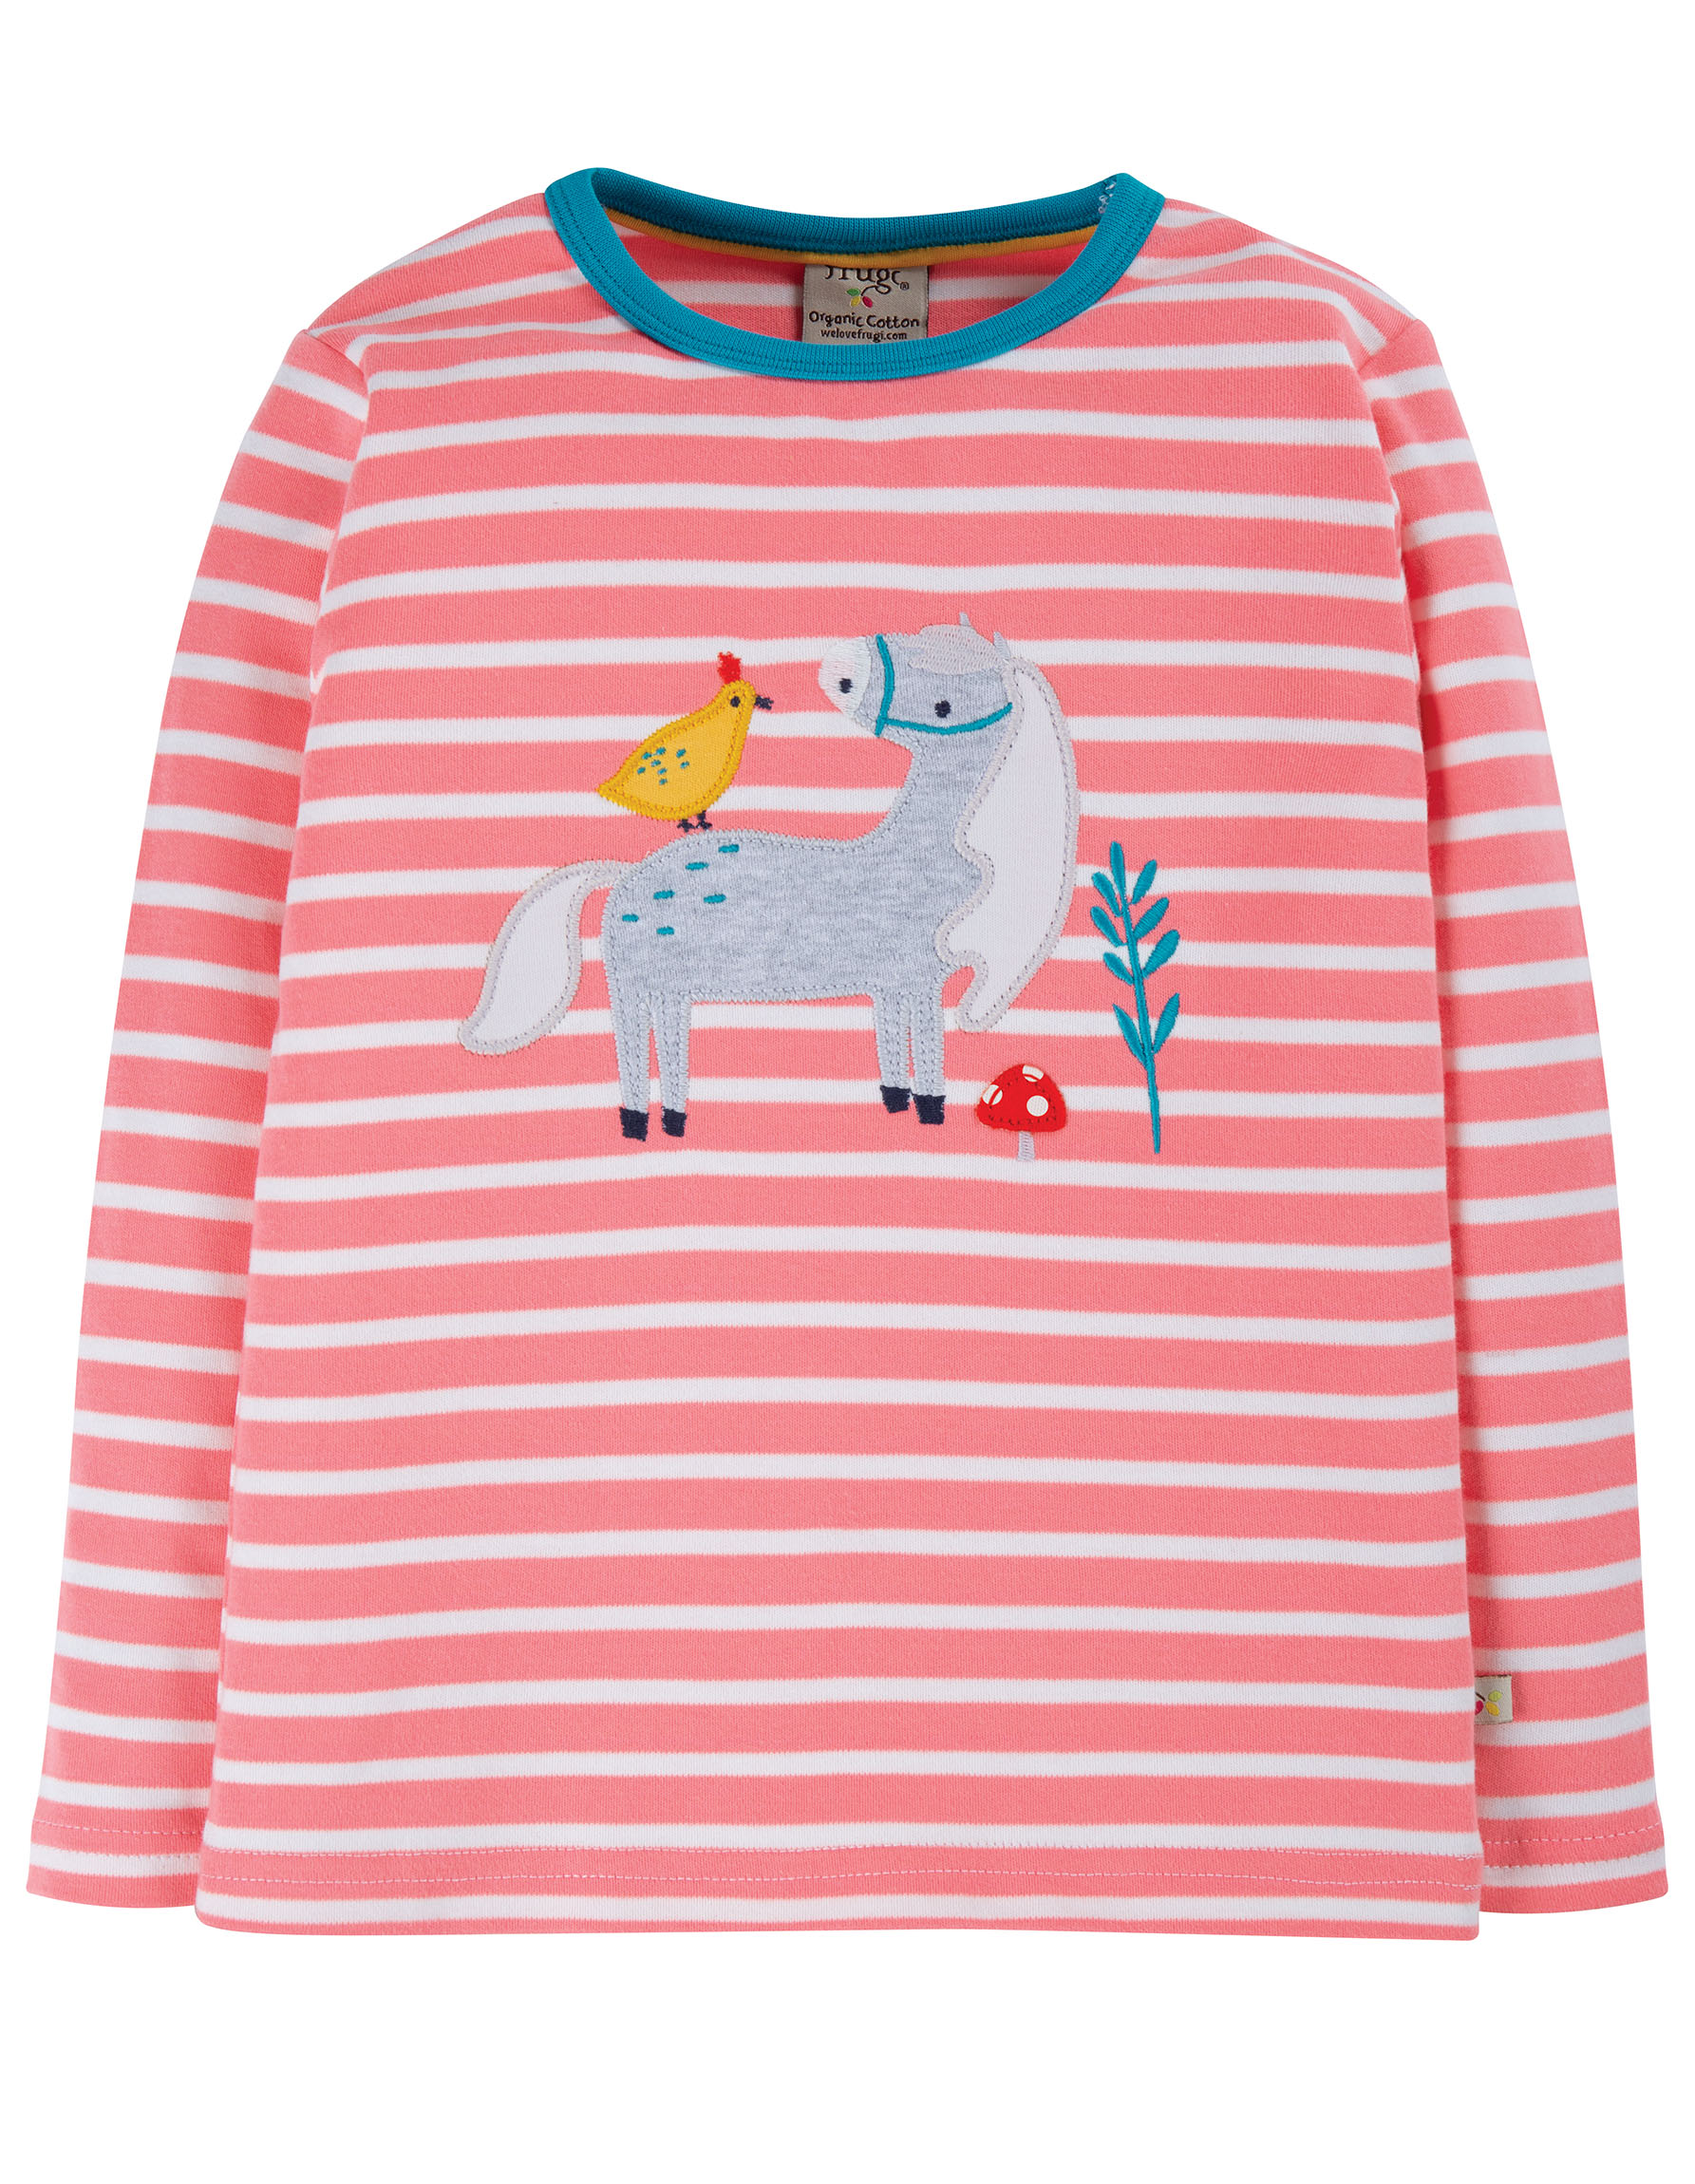 Frugi Discovery Appliqué Top, Guava Pink Stripe/Horse